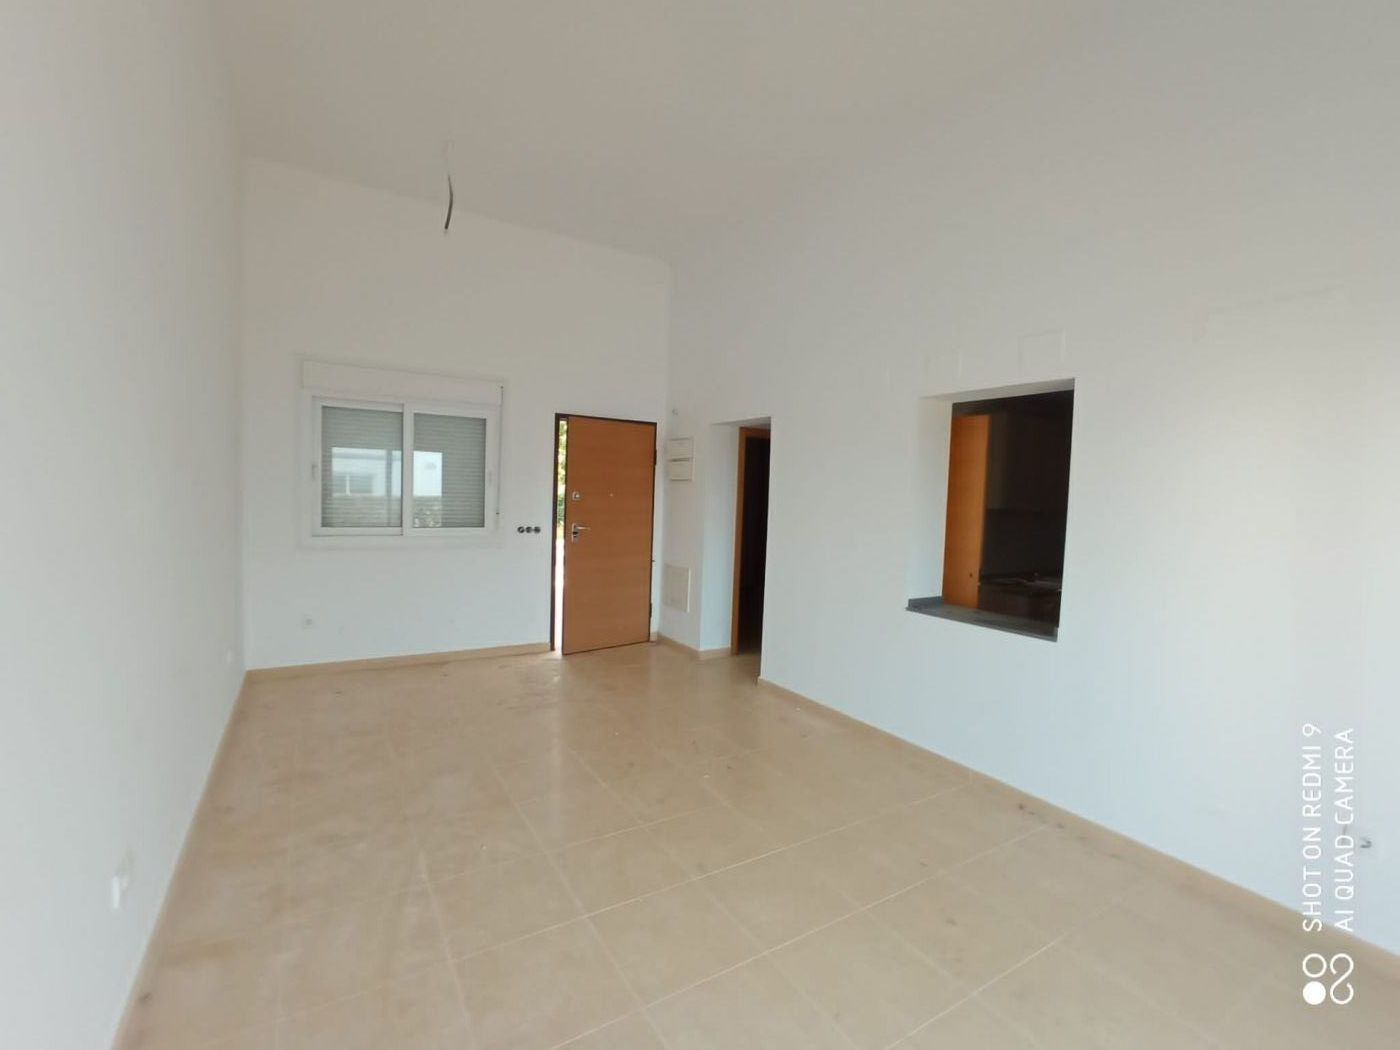 Image 2 Villa ref 3500 for sale in Condado De Alhama Spain - Quality Homes Costa Cálida